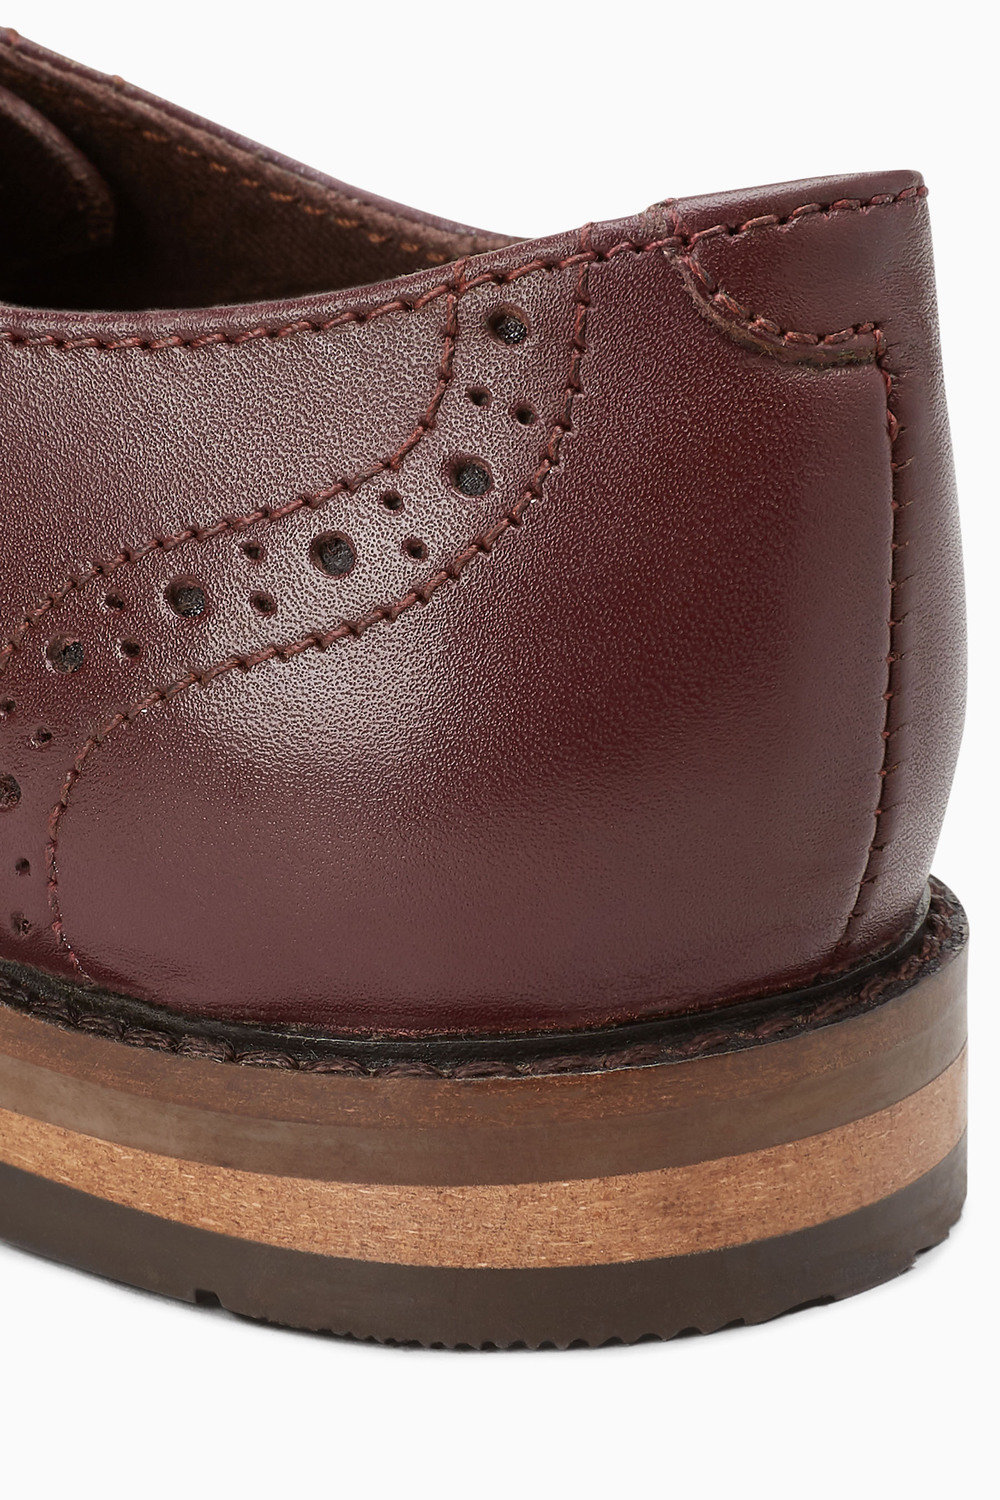 f615b4136 Next Leather Brogues (Older) Online